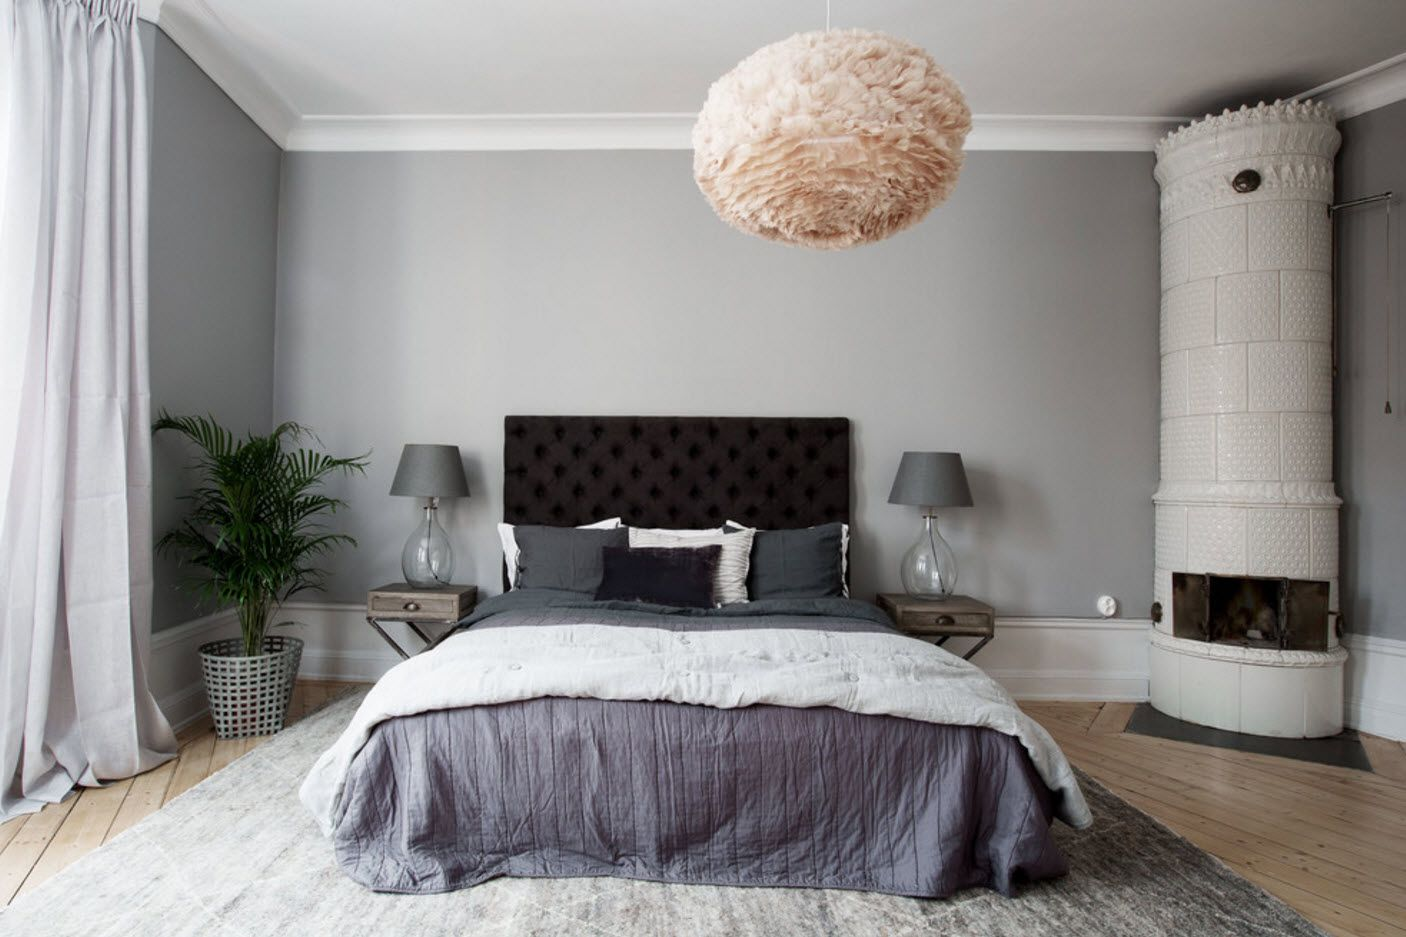 Classic bedroom interior with quilted dark headboard and platform bed